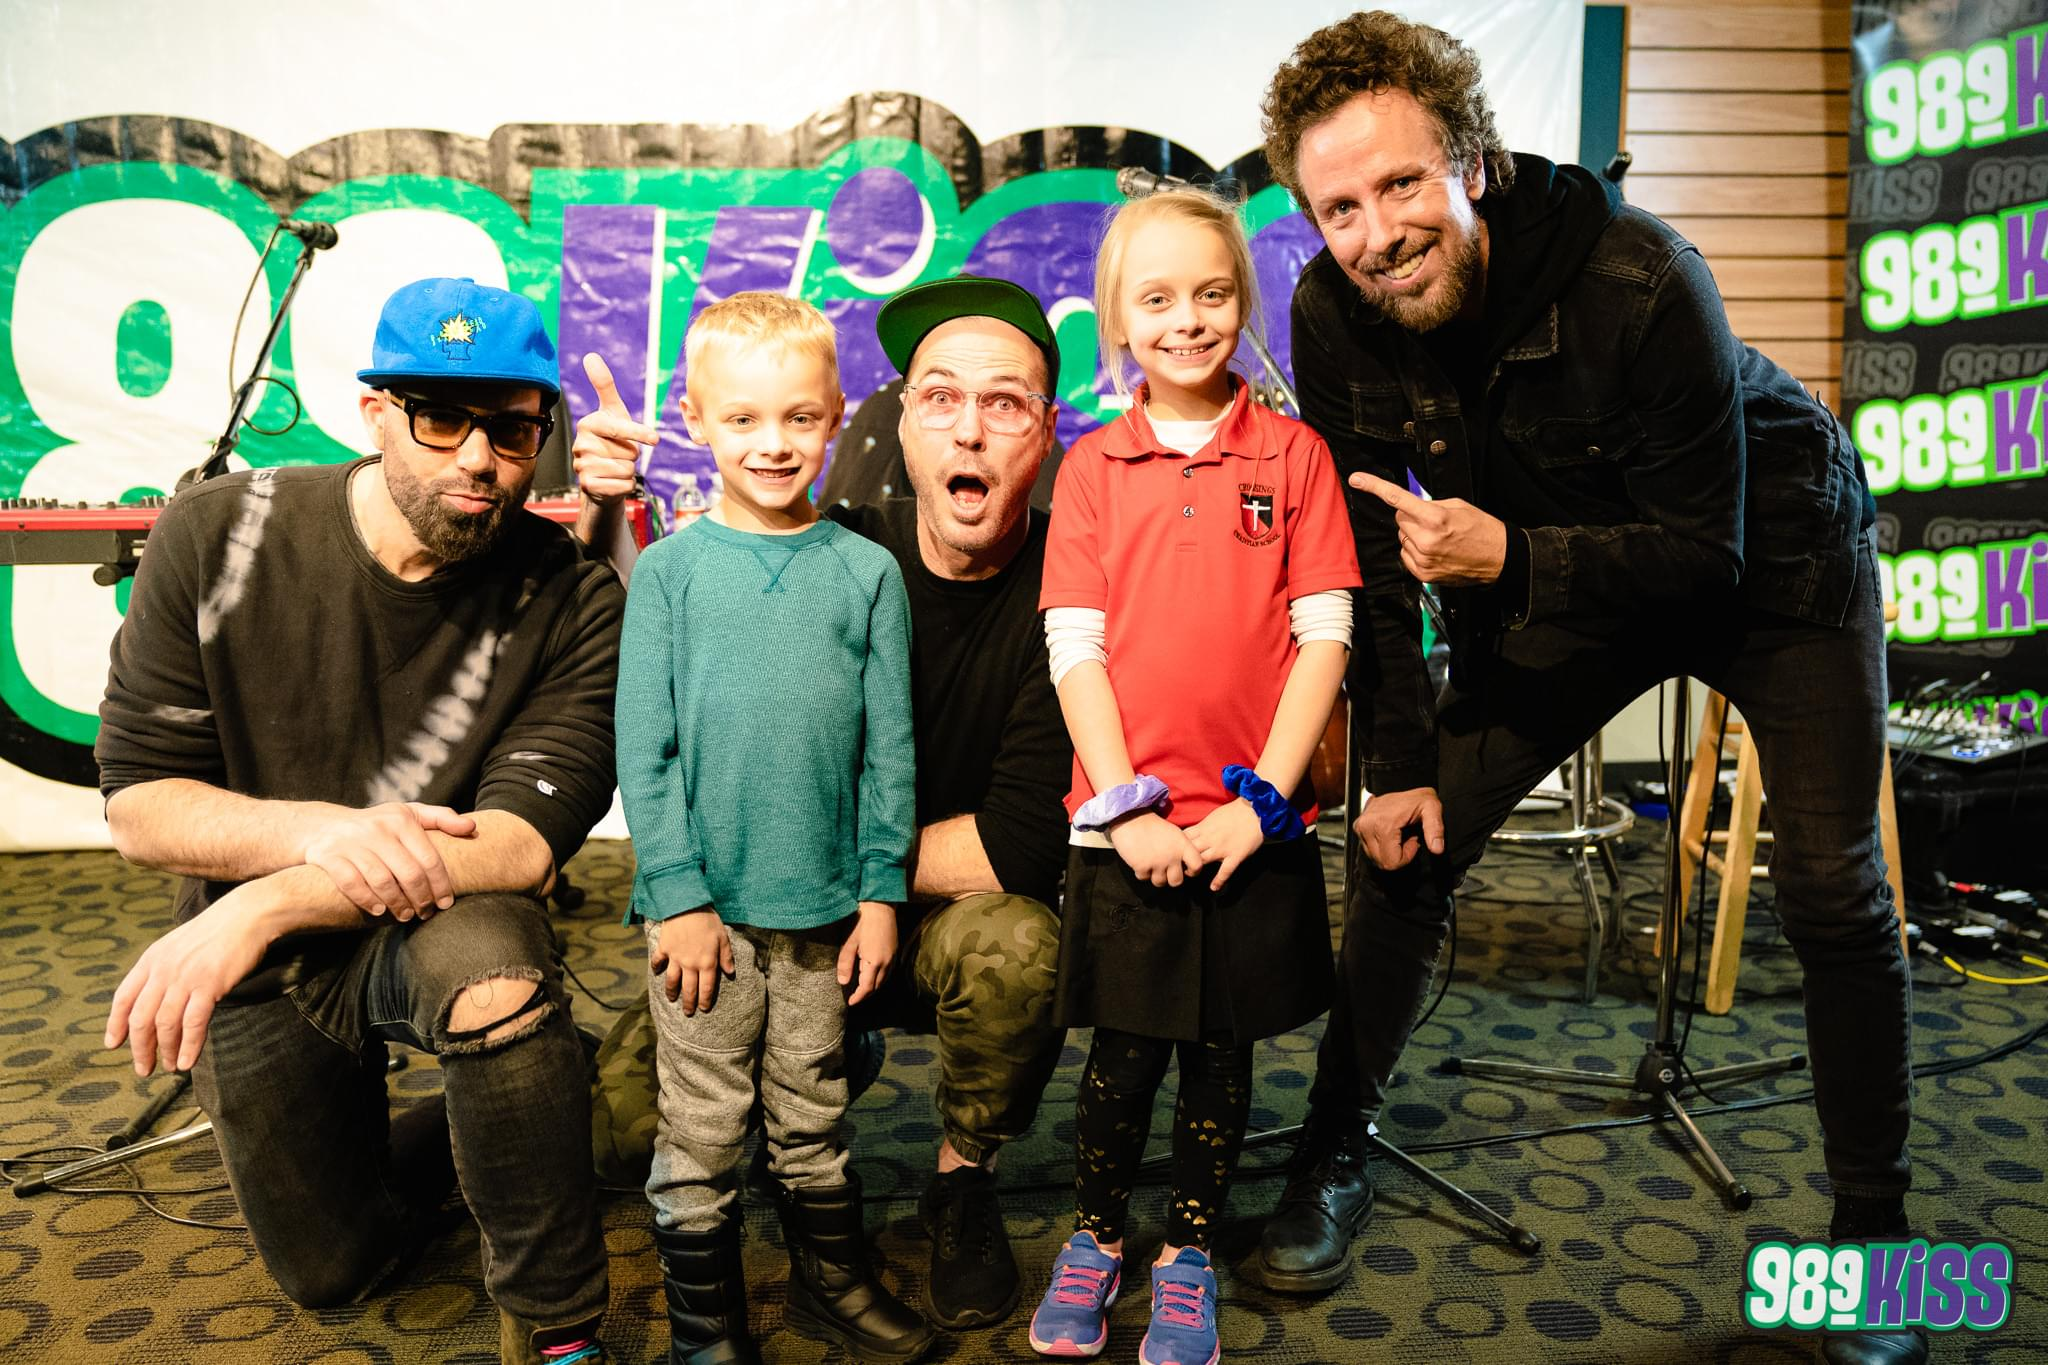 PHOTOS: Fitz and The Tantrums Meet & Greet